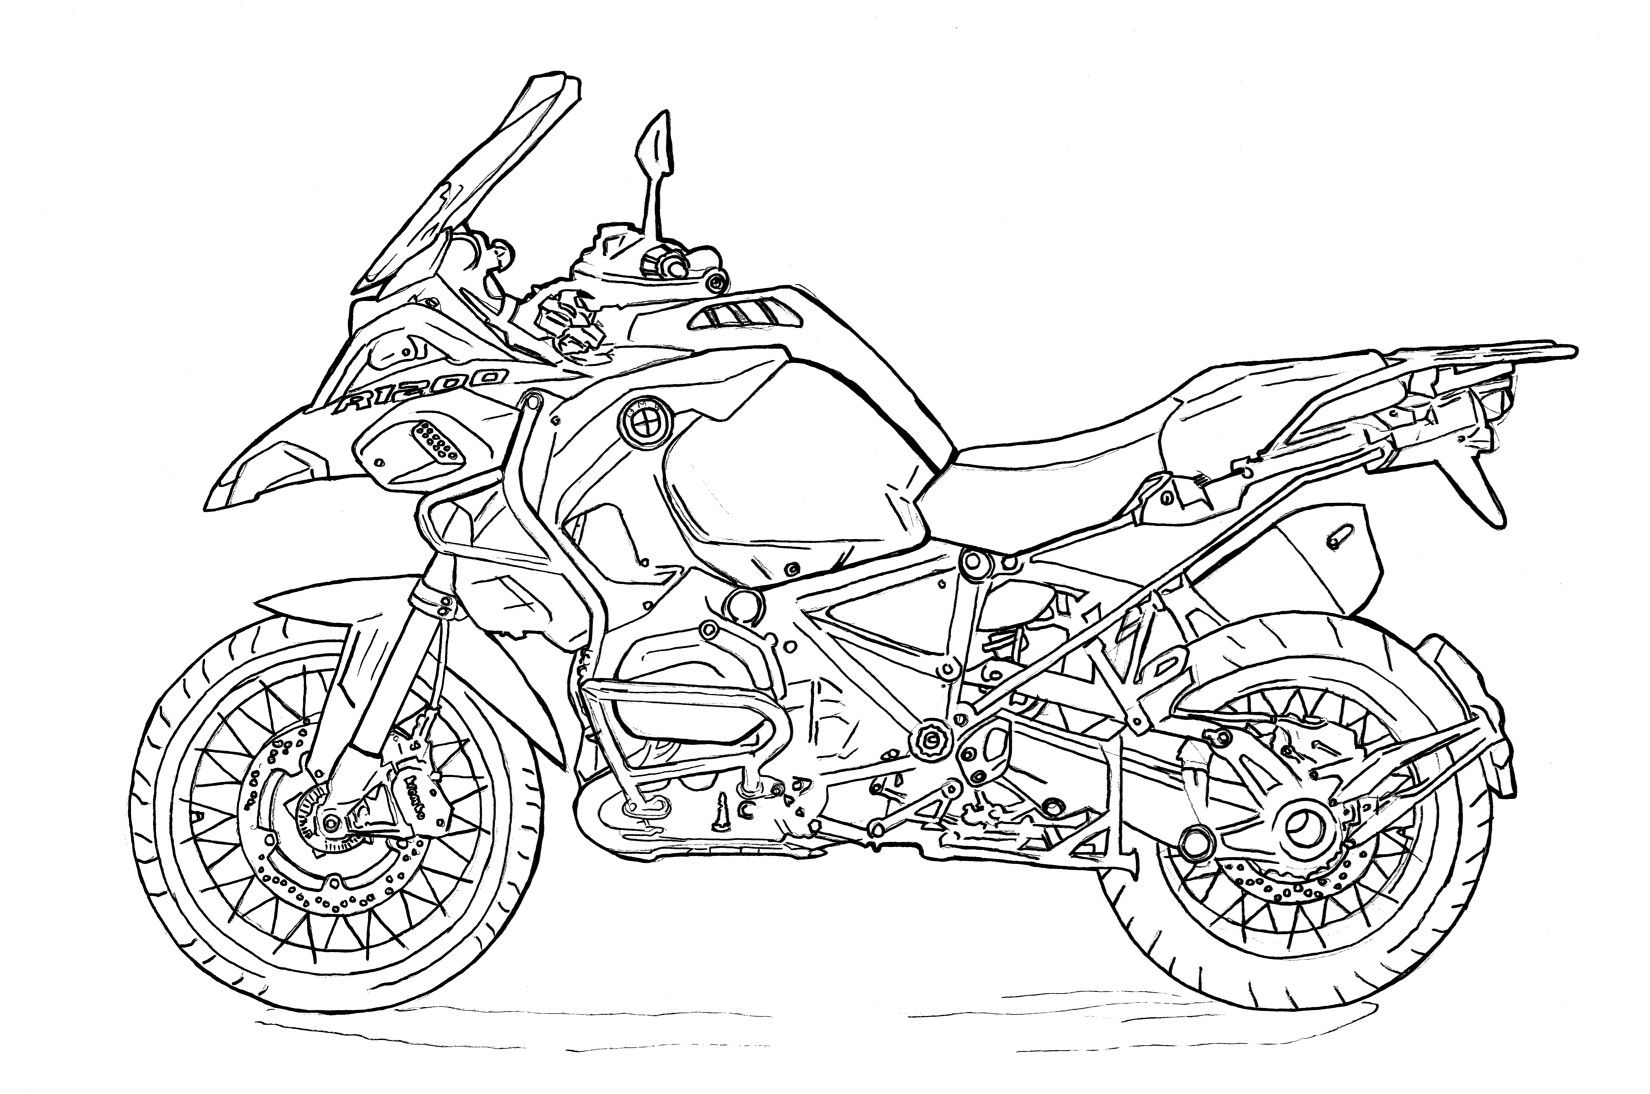 Pin By Bhabani Shankar Sahu On Drawings With Images Motorcycle